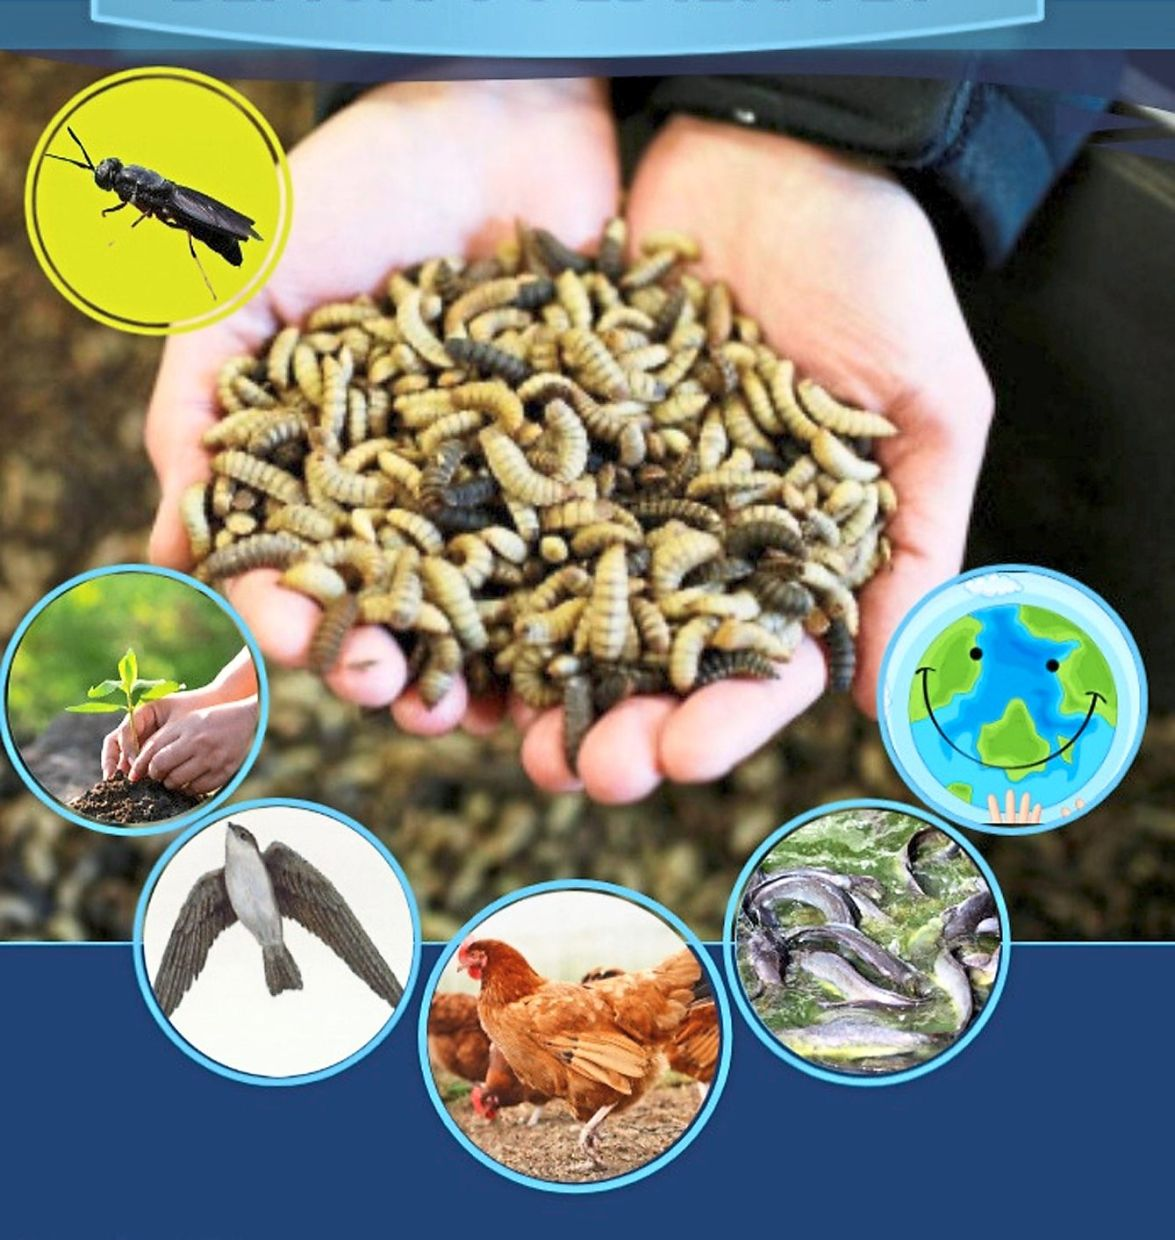 Black soldier fly larvae are said    to be high in protein and     are used in  livestock and fish breeding as well as in producing fertiliser. — Photo: AI Ansar Farm Facebook page.